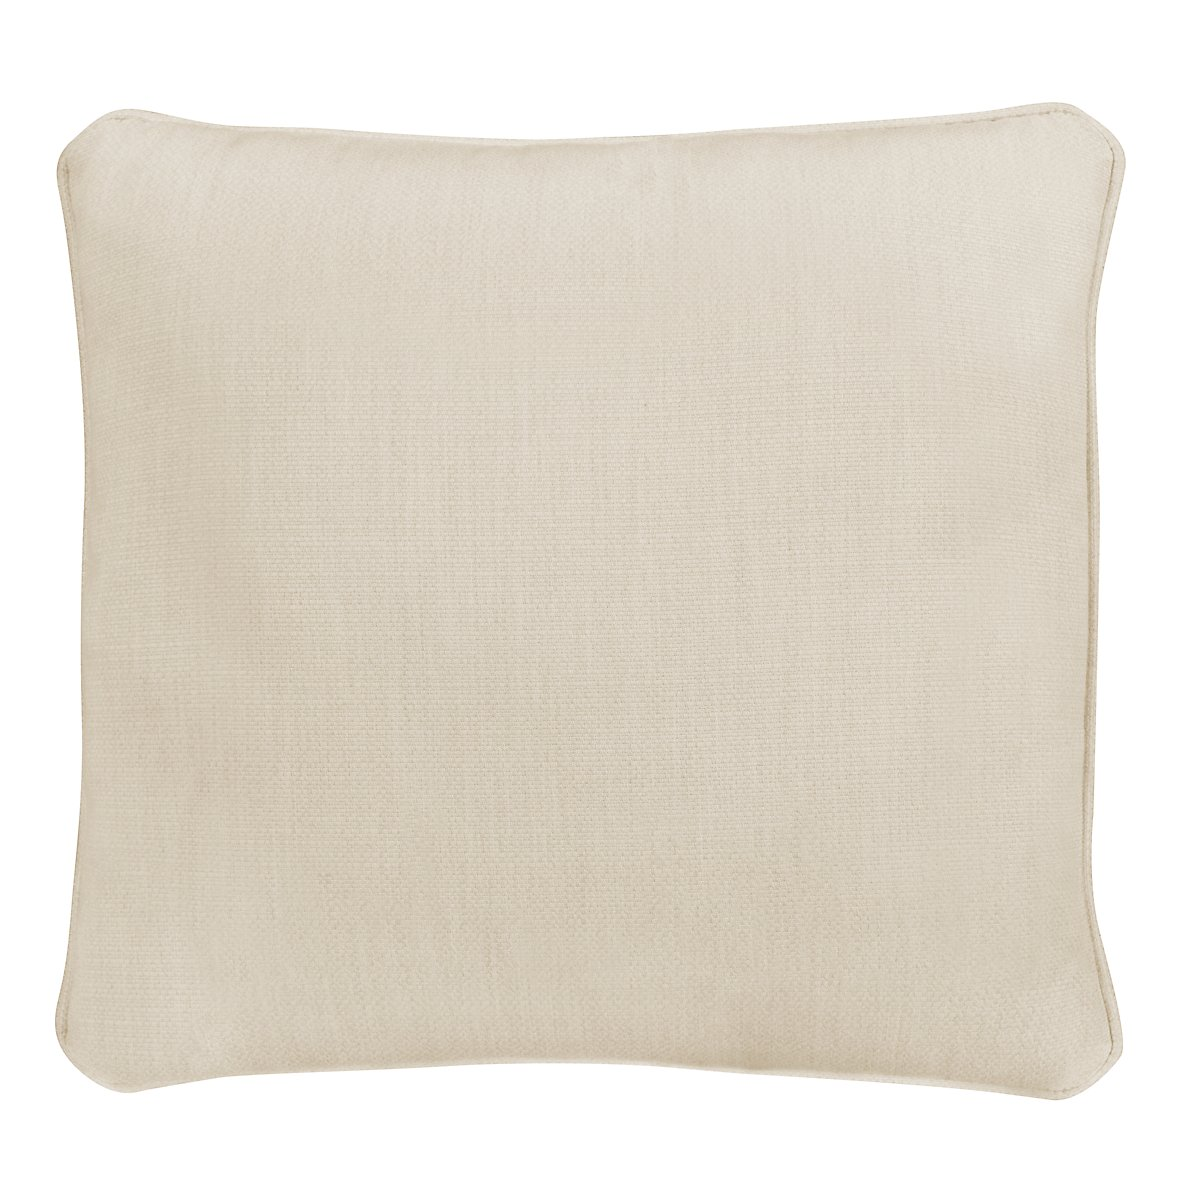 "Moka Lt Beige 18"" Indoor/Outdoor Accent Pillow"